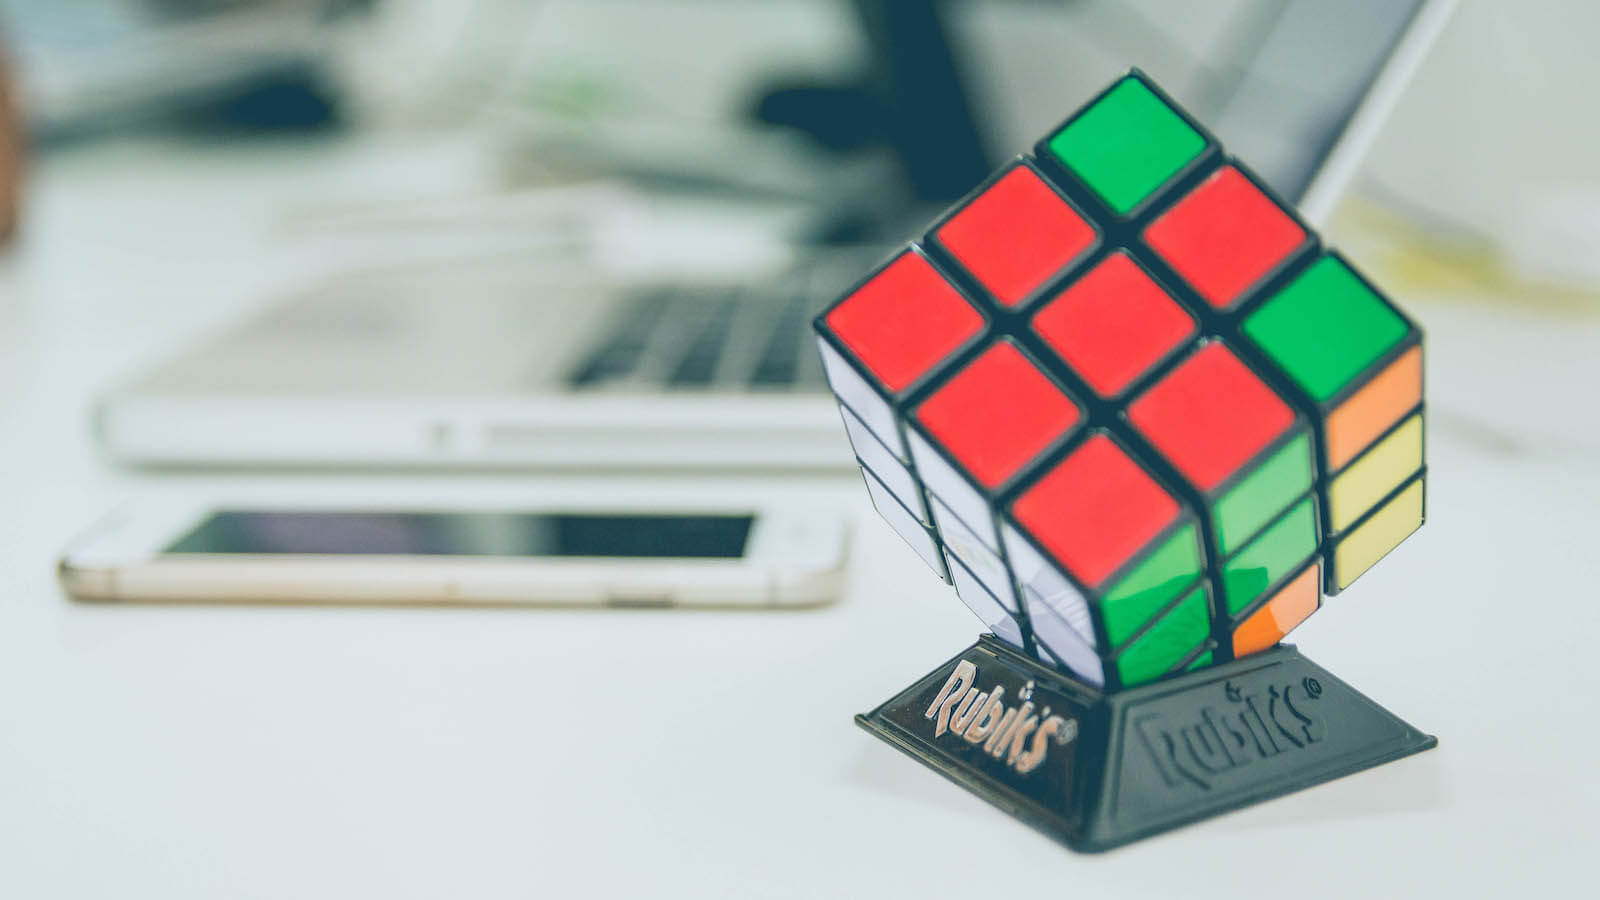 An image of a Rubiks cube